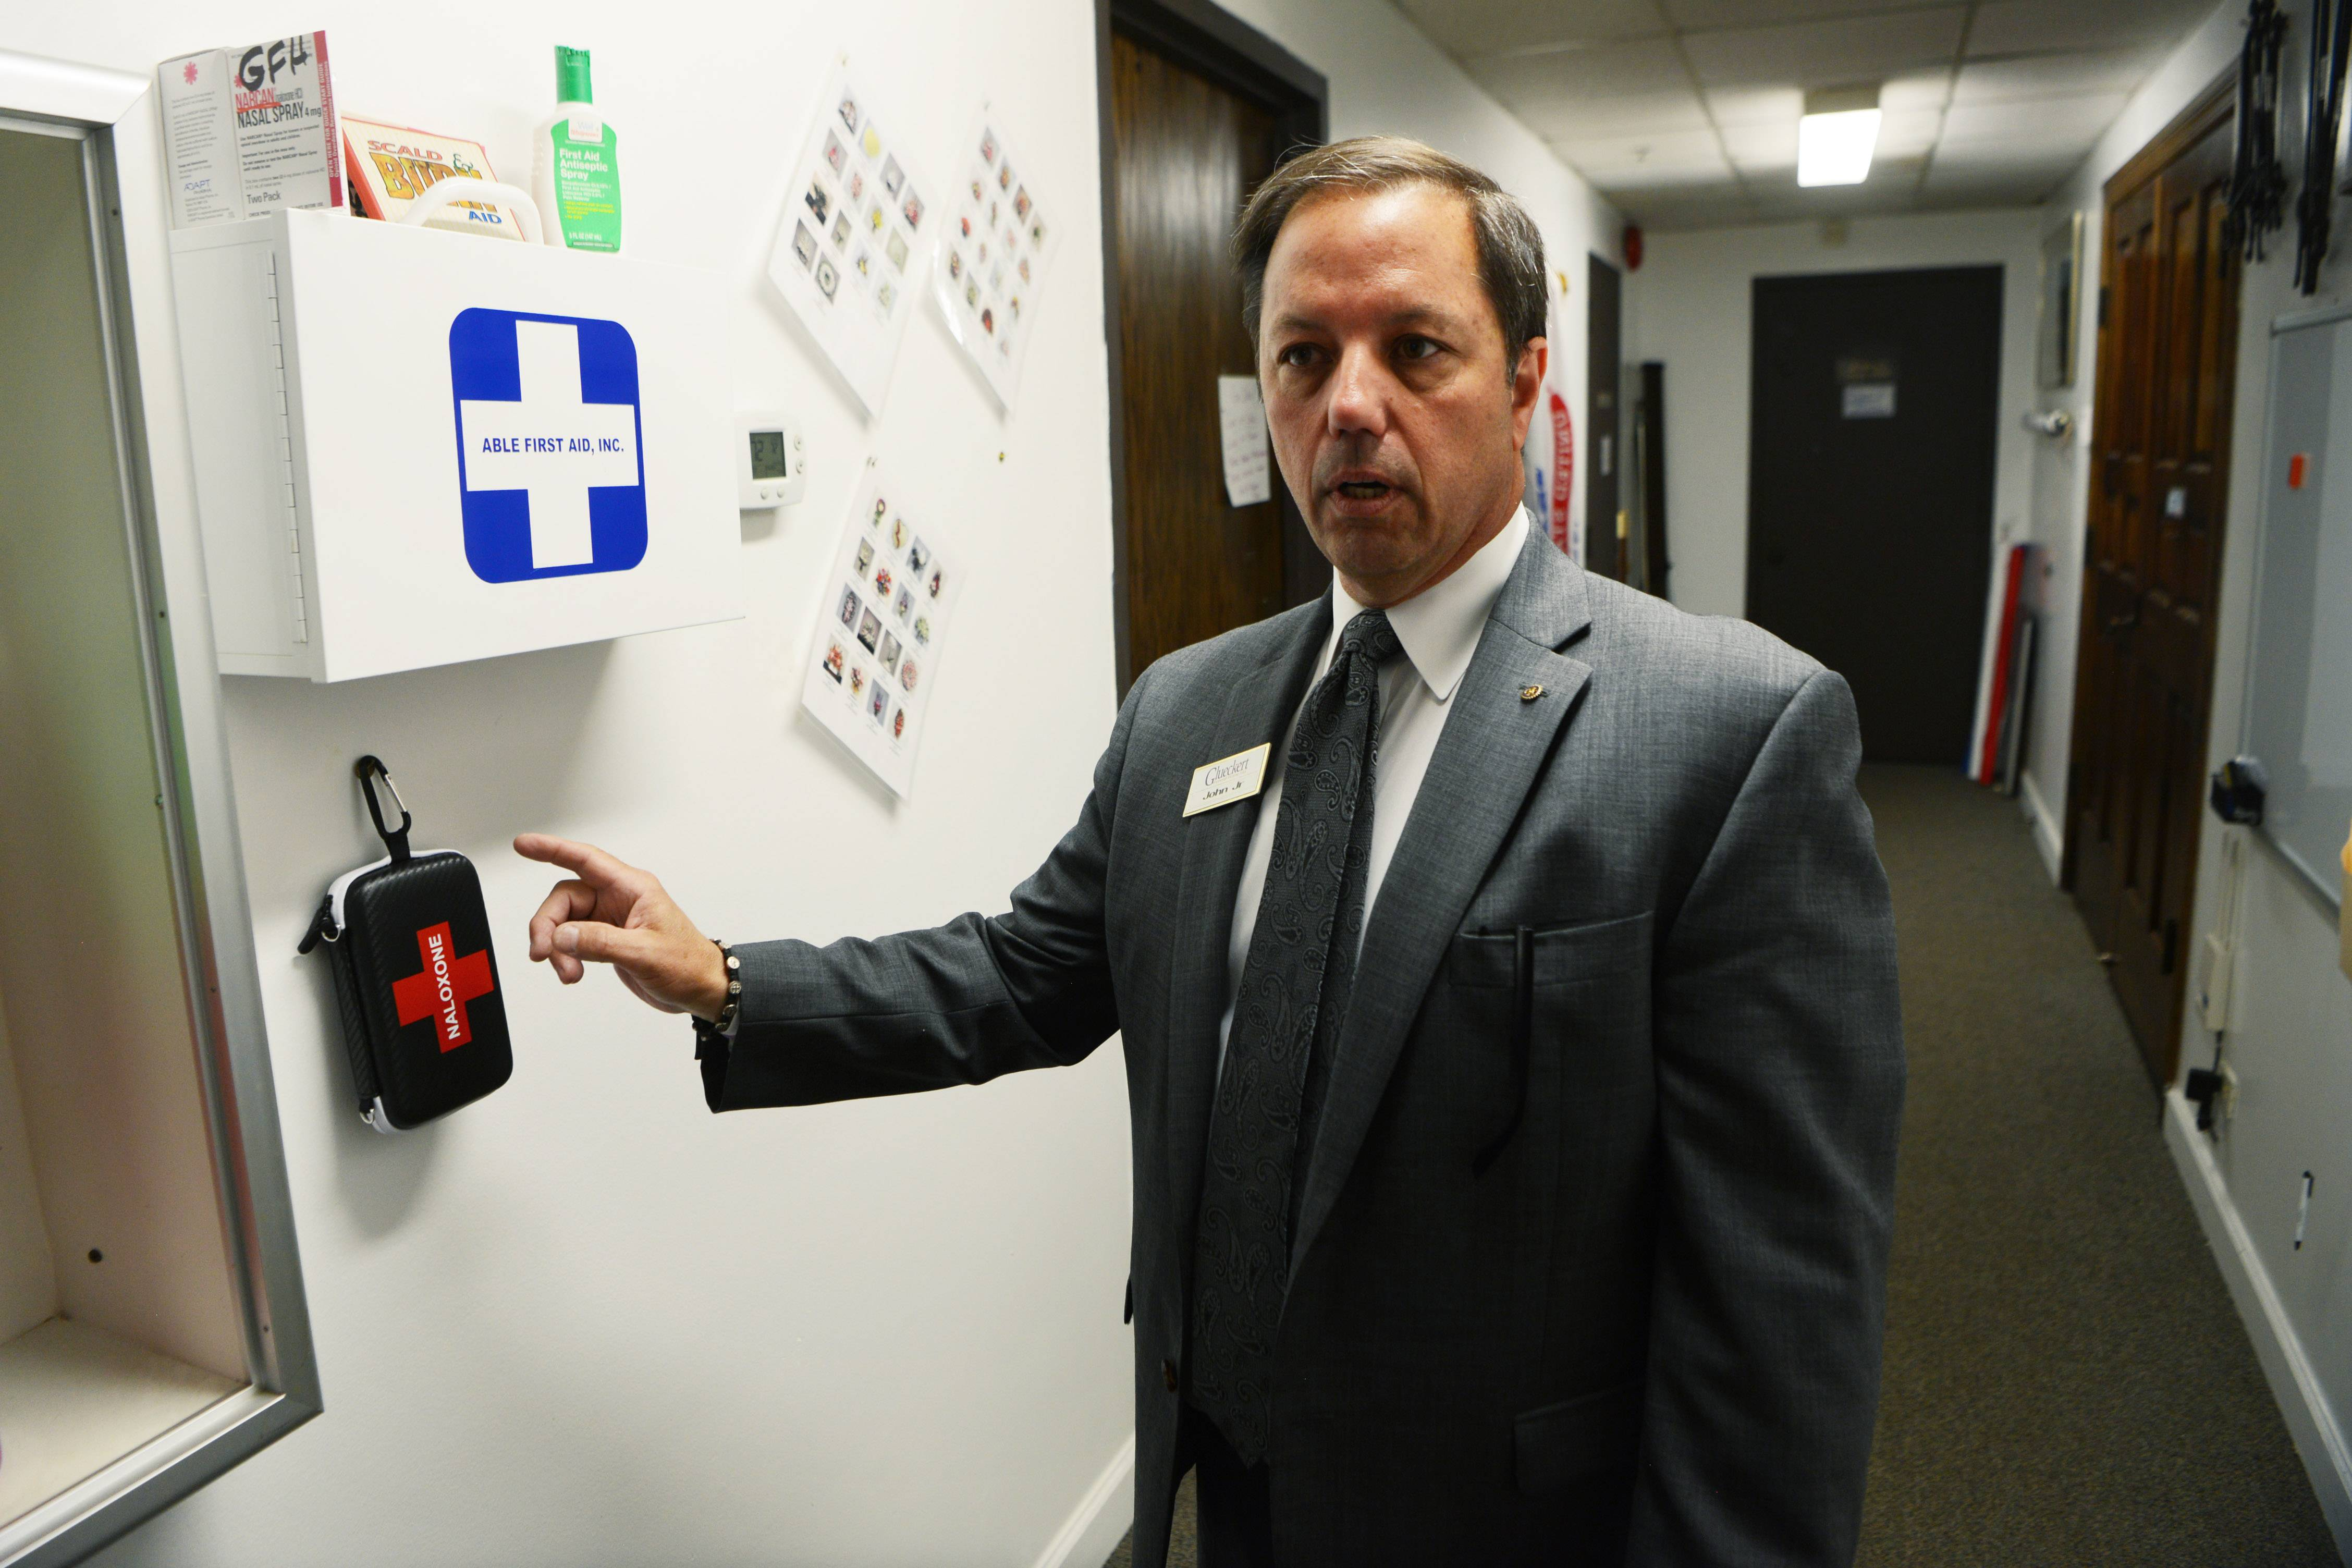 Funeral director and owner John Glueckert Jr. of Glueckert Funeral Home in Arlington Heights keeps two naloxone opioid overdose response kits handy after hosting a training on use of the reversal drug during the wake of a 21-year-old who died from a heroin overdose.